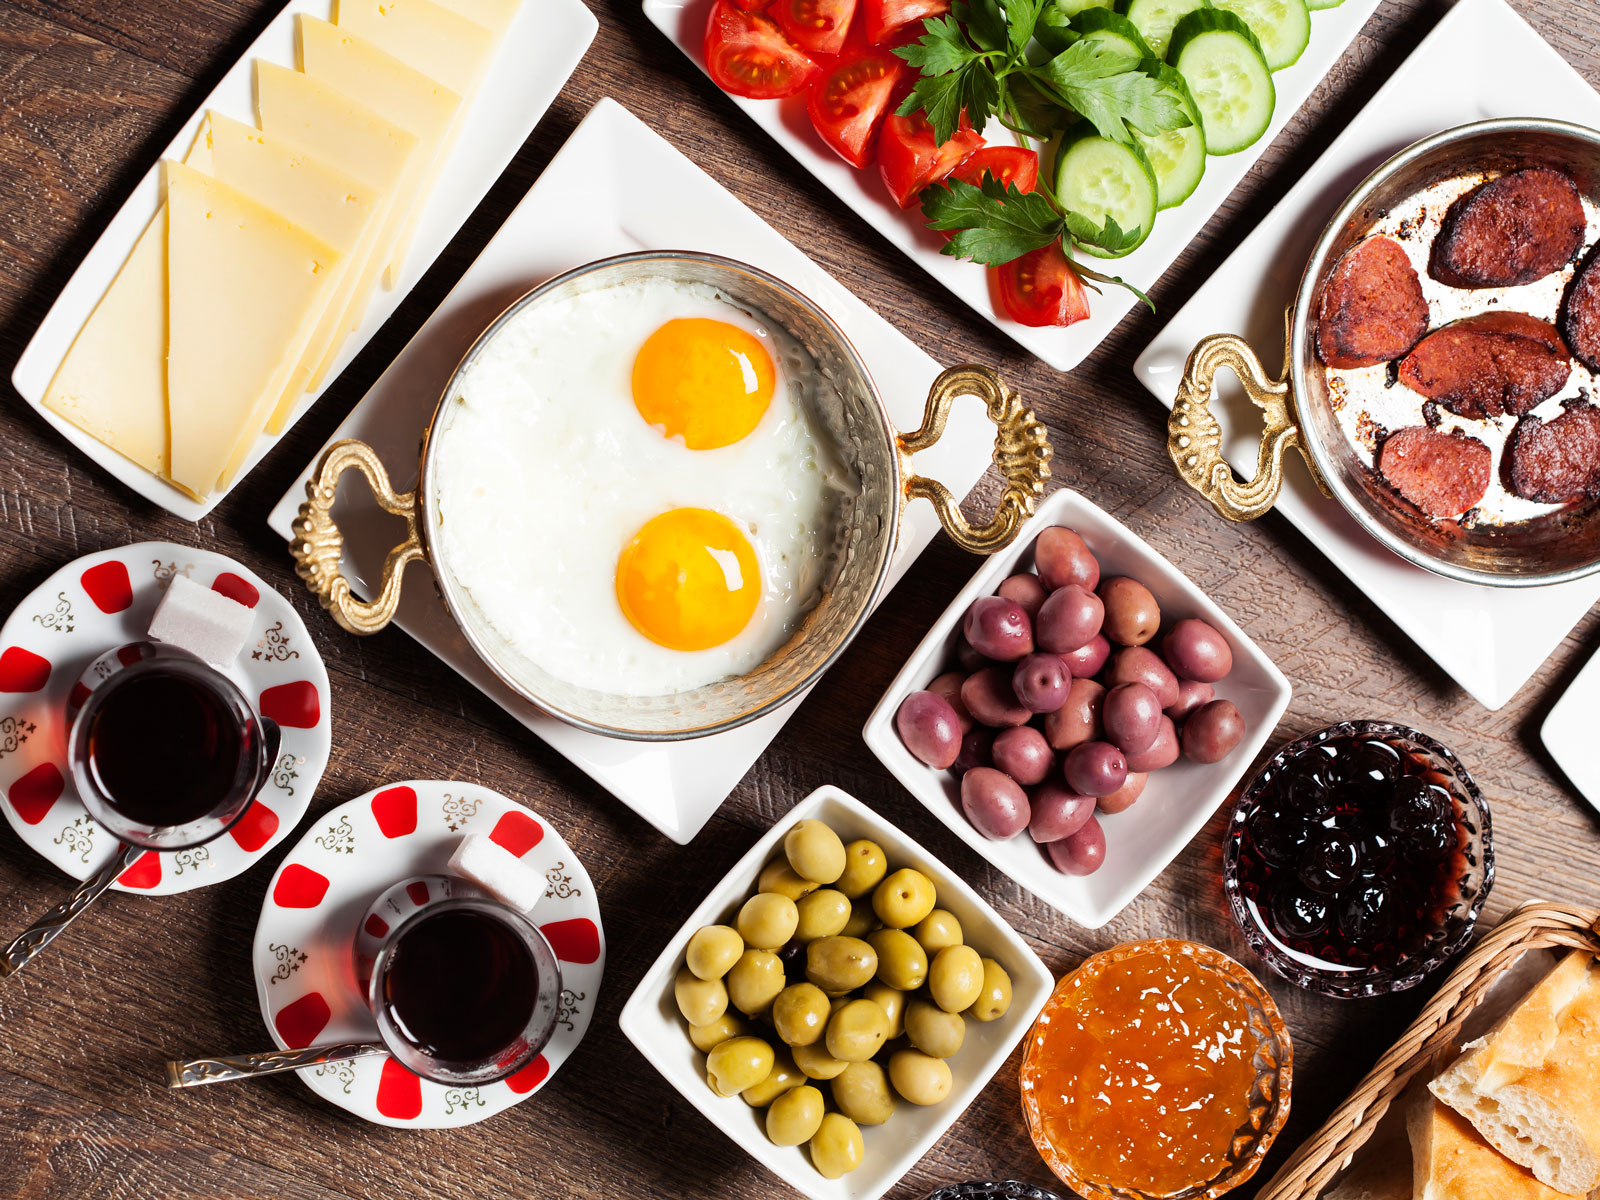 Everything You Need to Know About a Full Turkish Breakfast